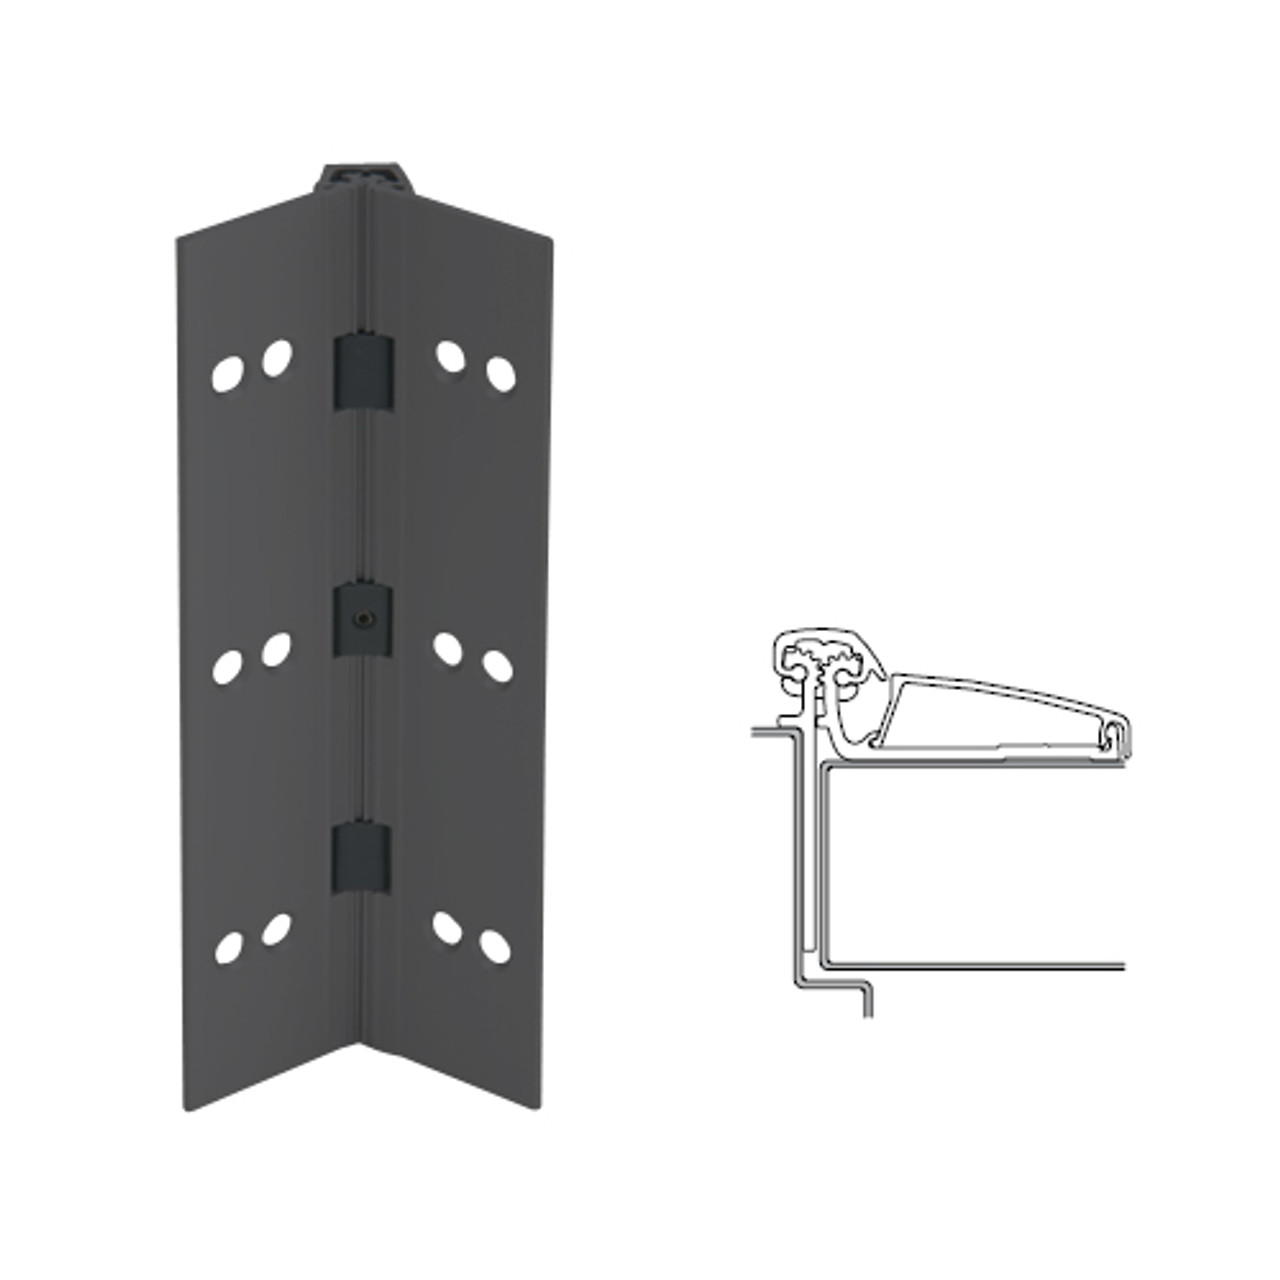 046XY-315AN-95-SECHM IVES Adjustable Half Surface Continuous Geared Hinges with Security Screws - Hex Pin Drive in Anodized Black